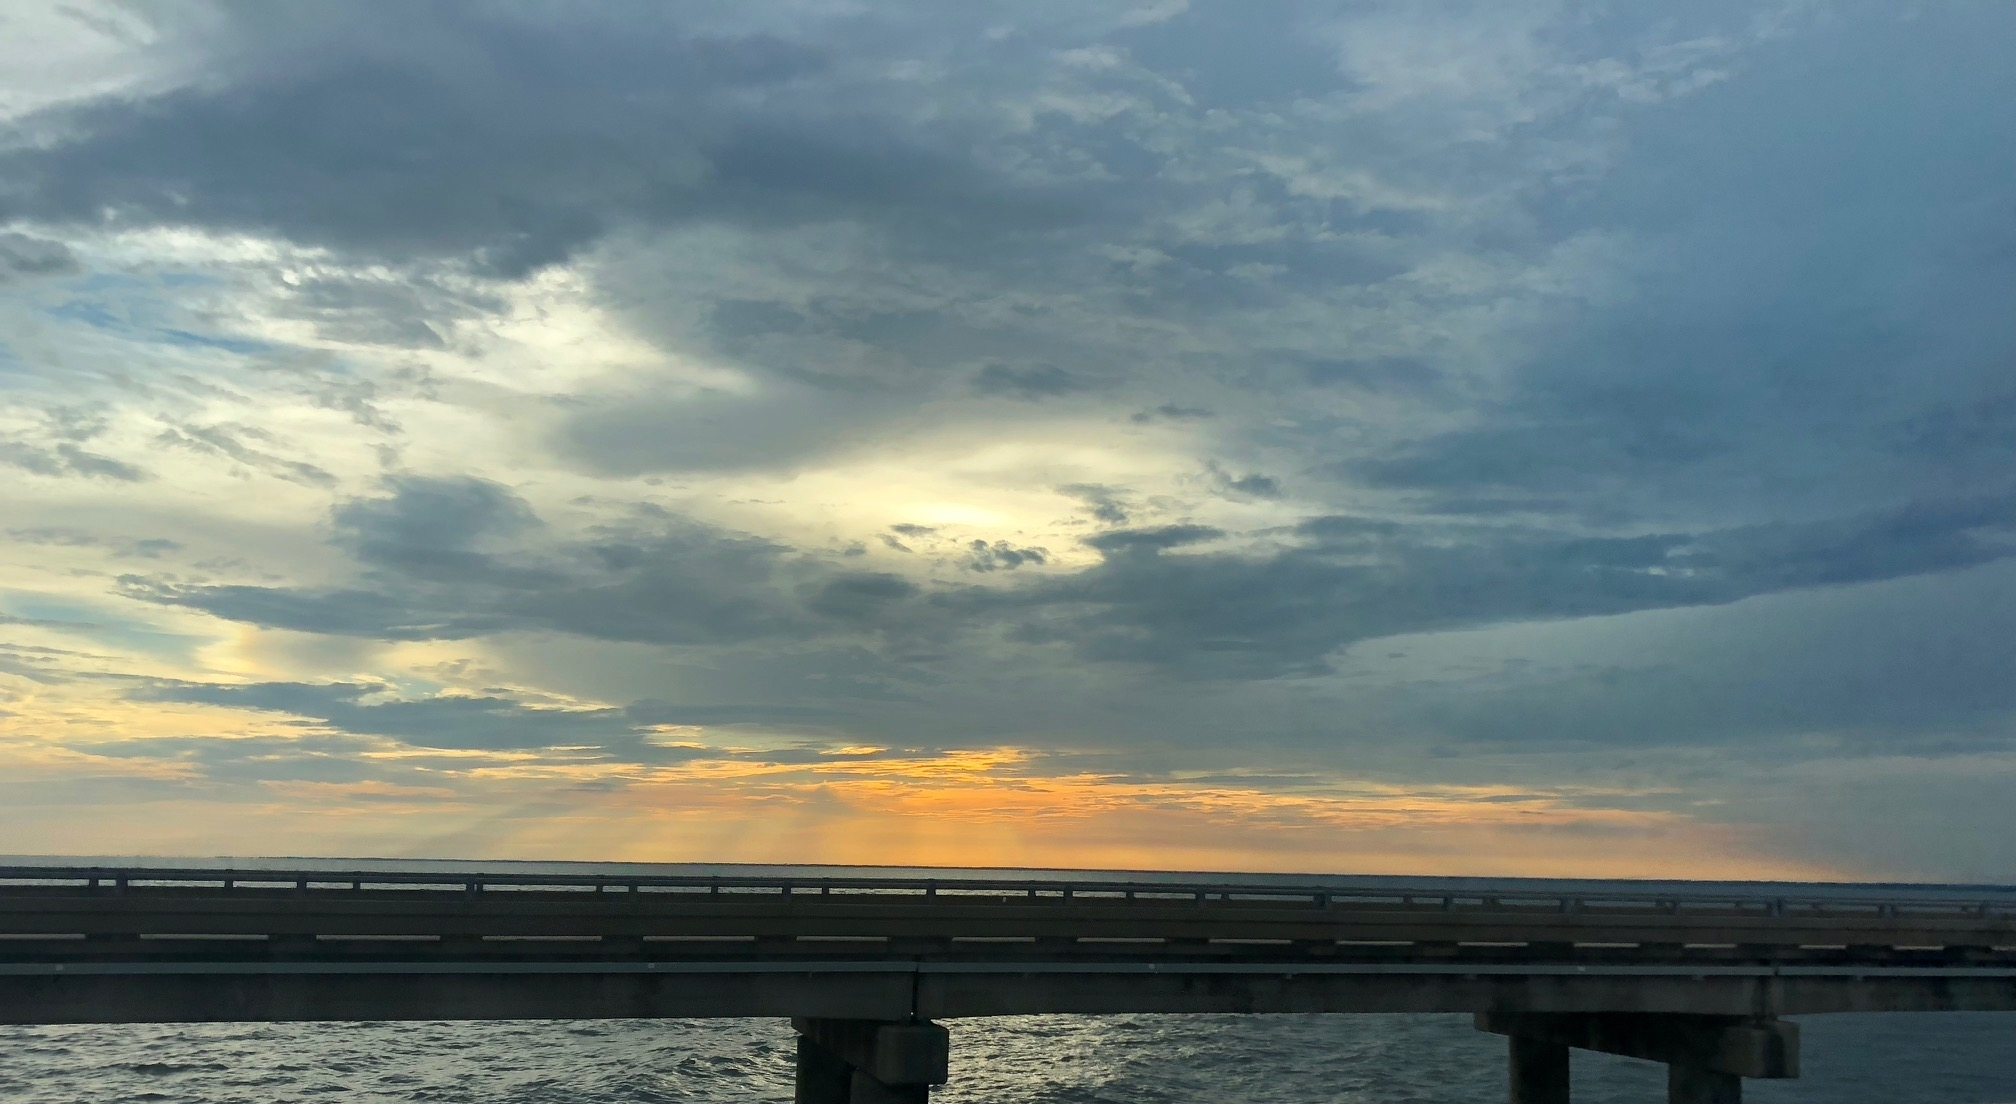 Pro tip: try not to take photos of the sunset skies while commuting on one of the longest bridges in the world.